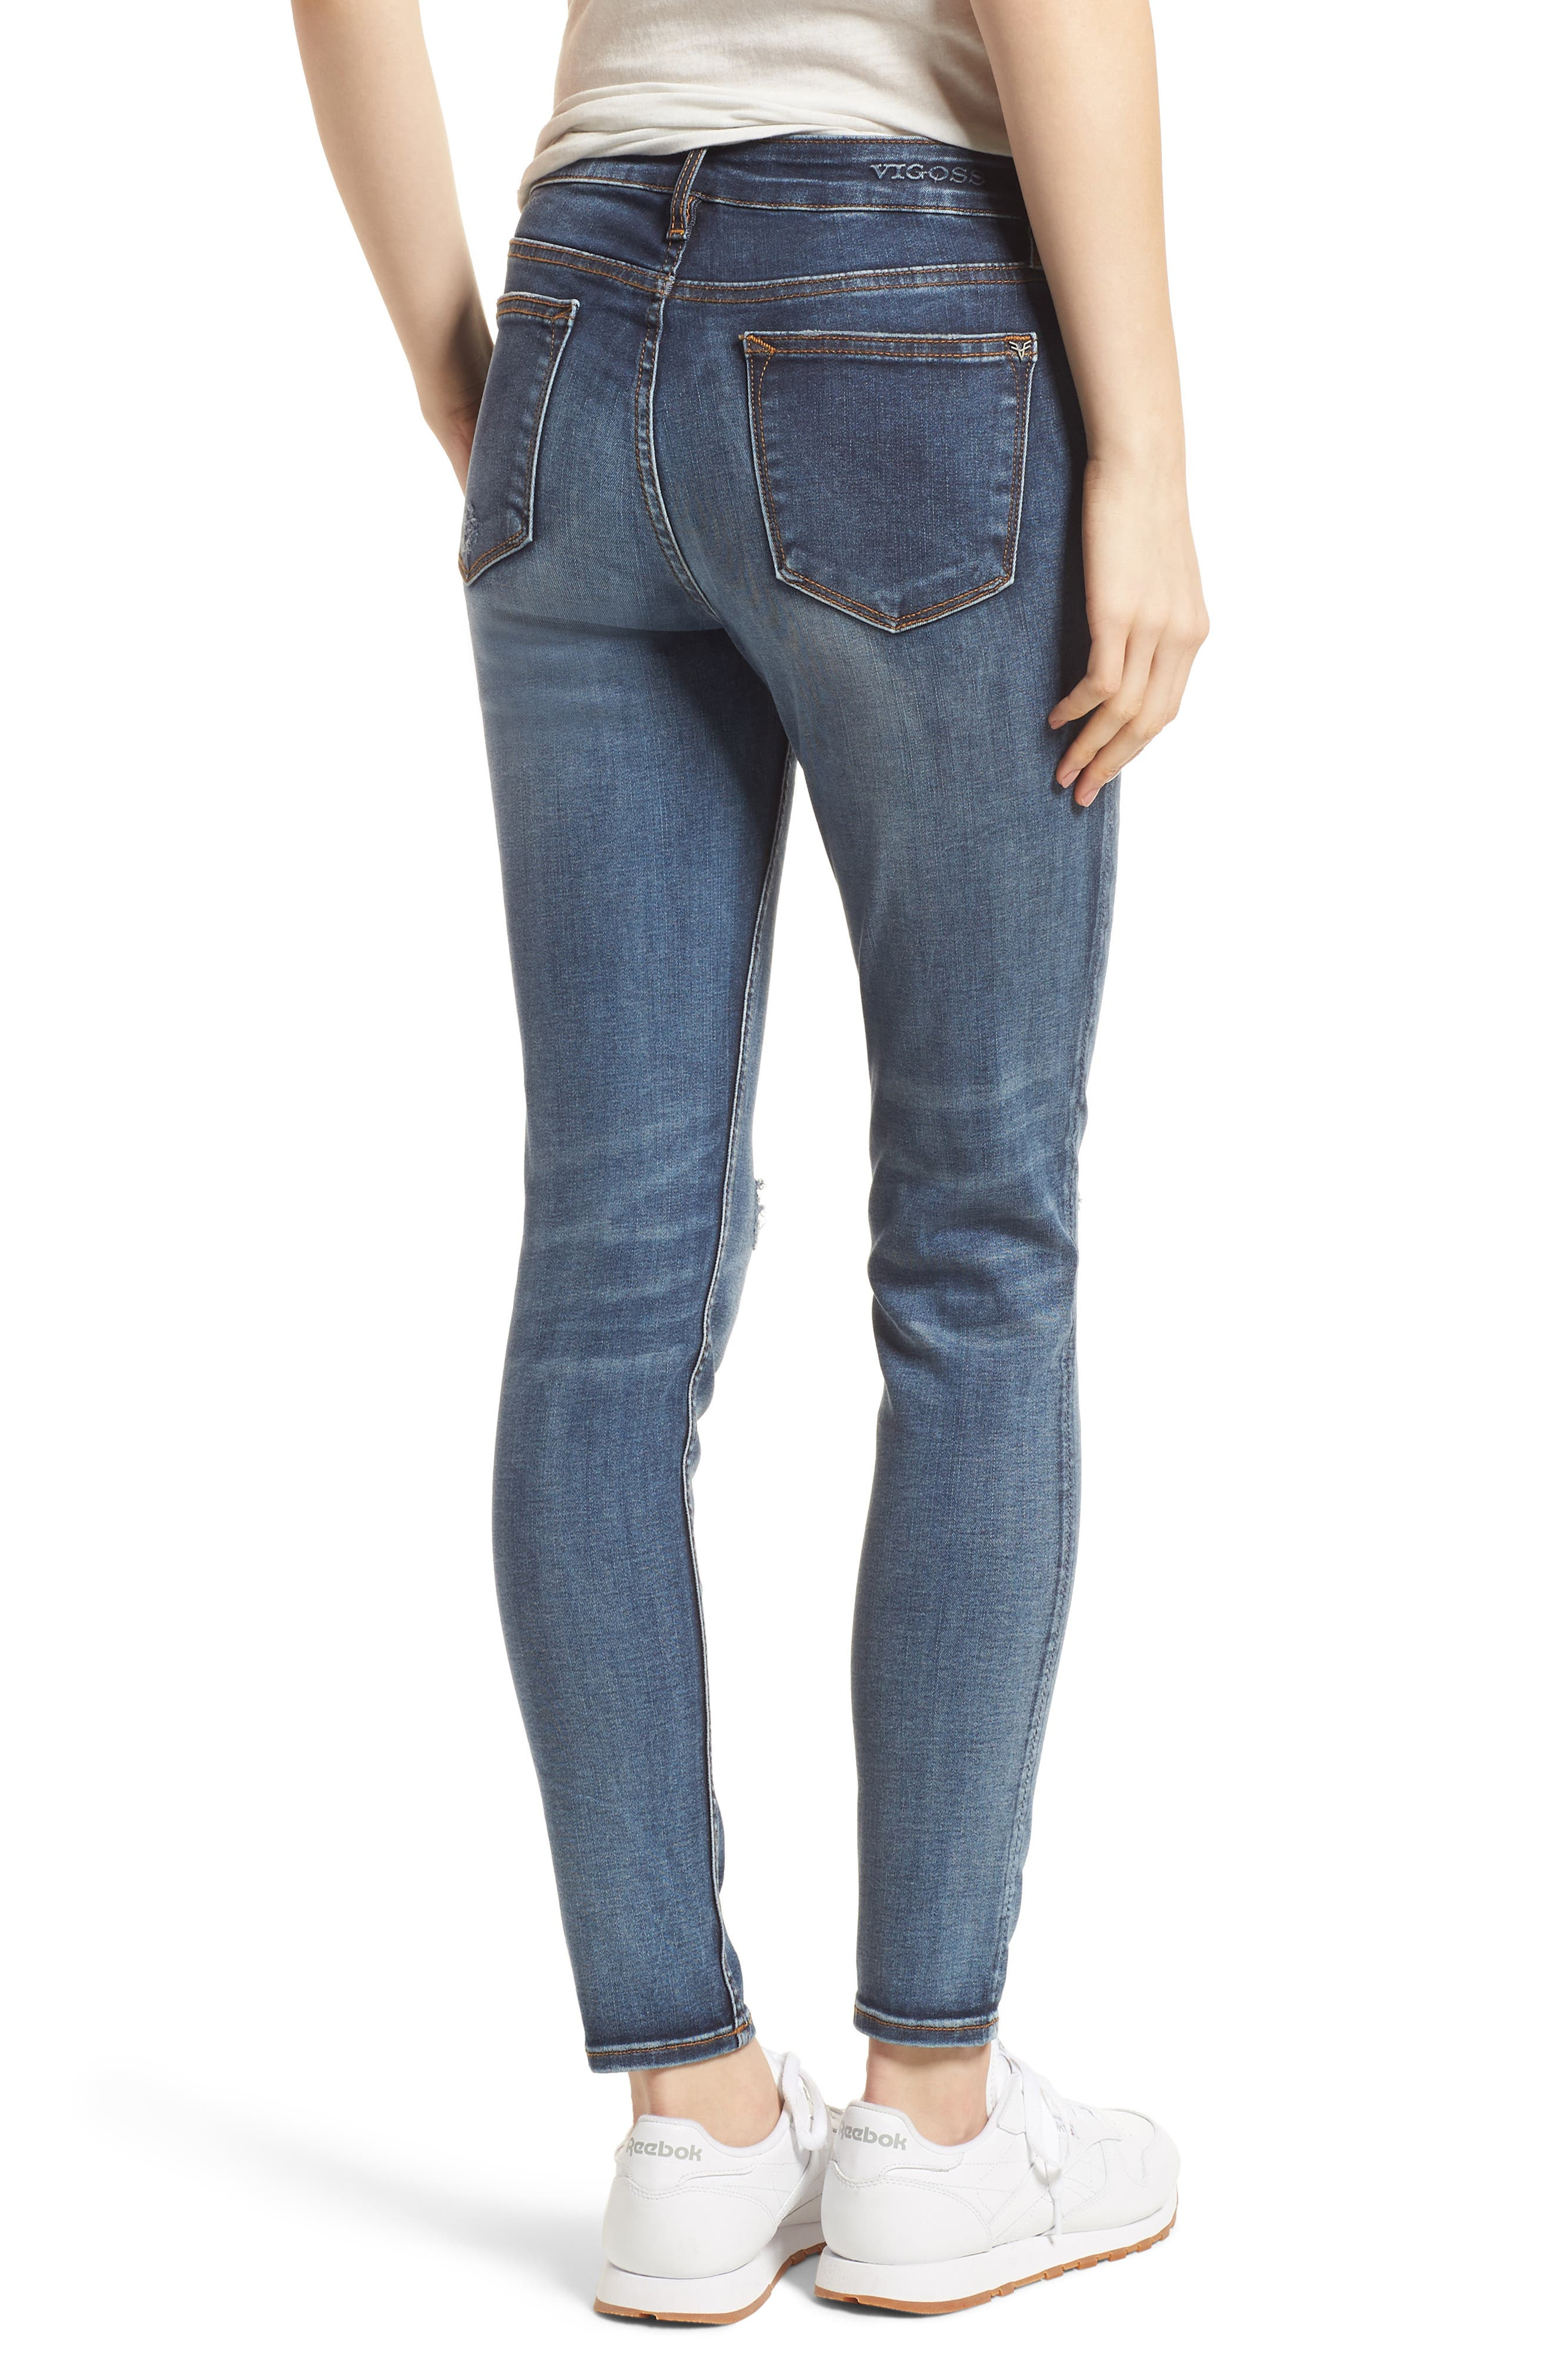 Jagger Ripped Skinny Jeans,                             Alternate thumbnail 2, color,